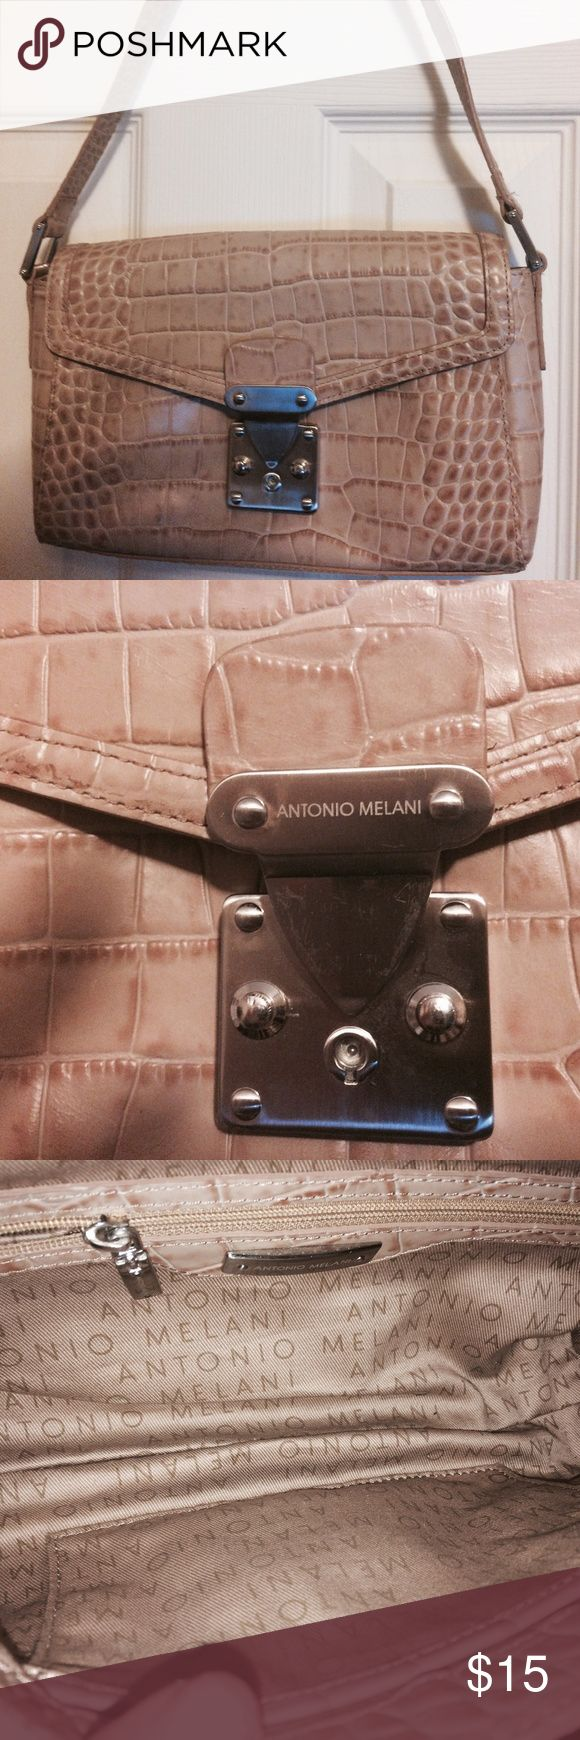 Pocketbook Very nice pocketbook in like new condition. Never used. ANTONIO MELANI Bags